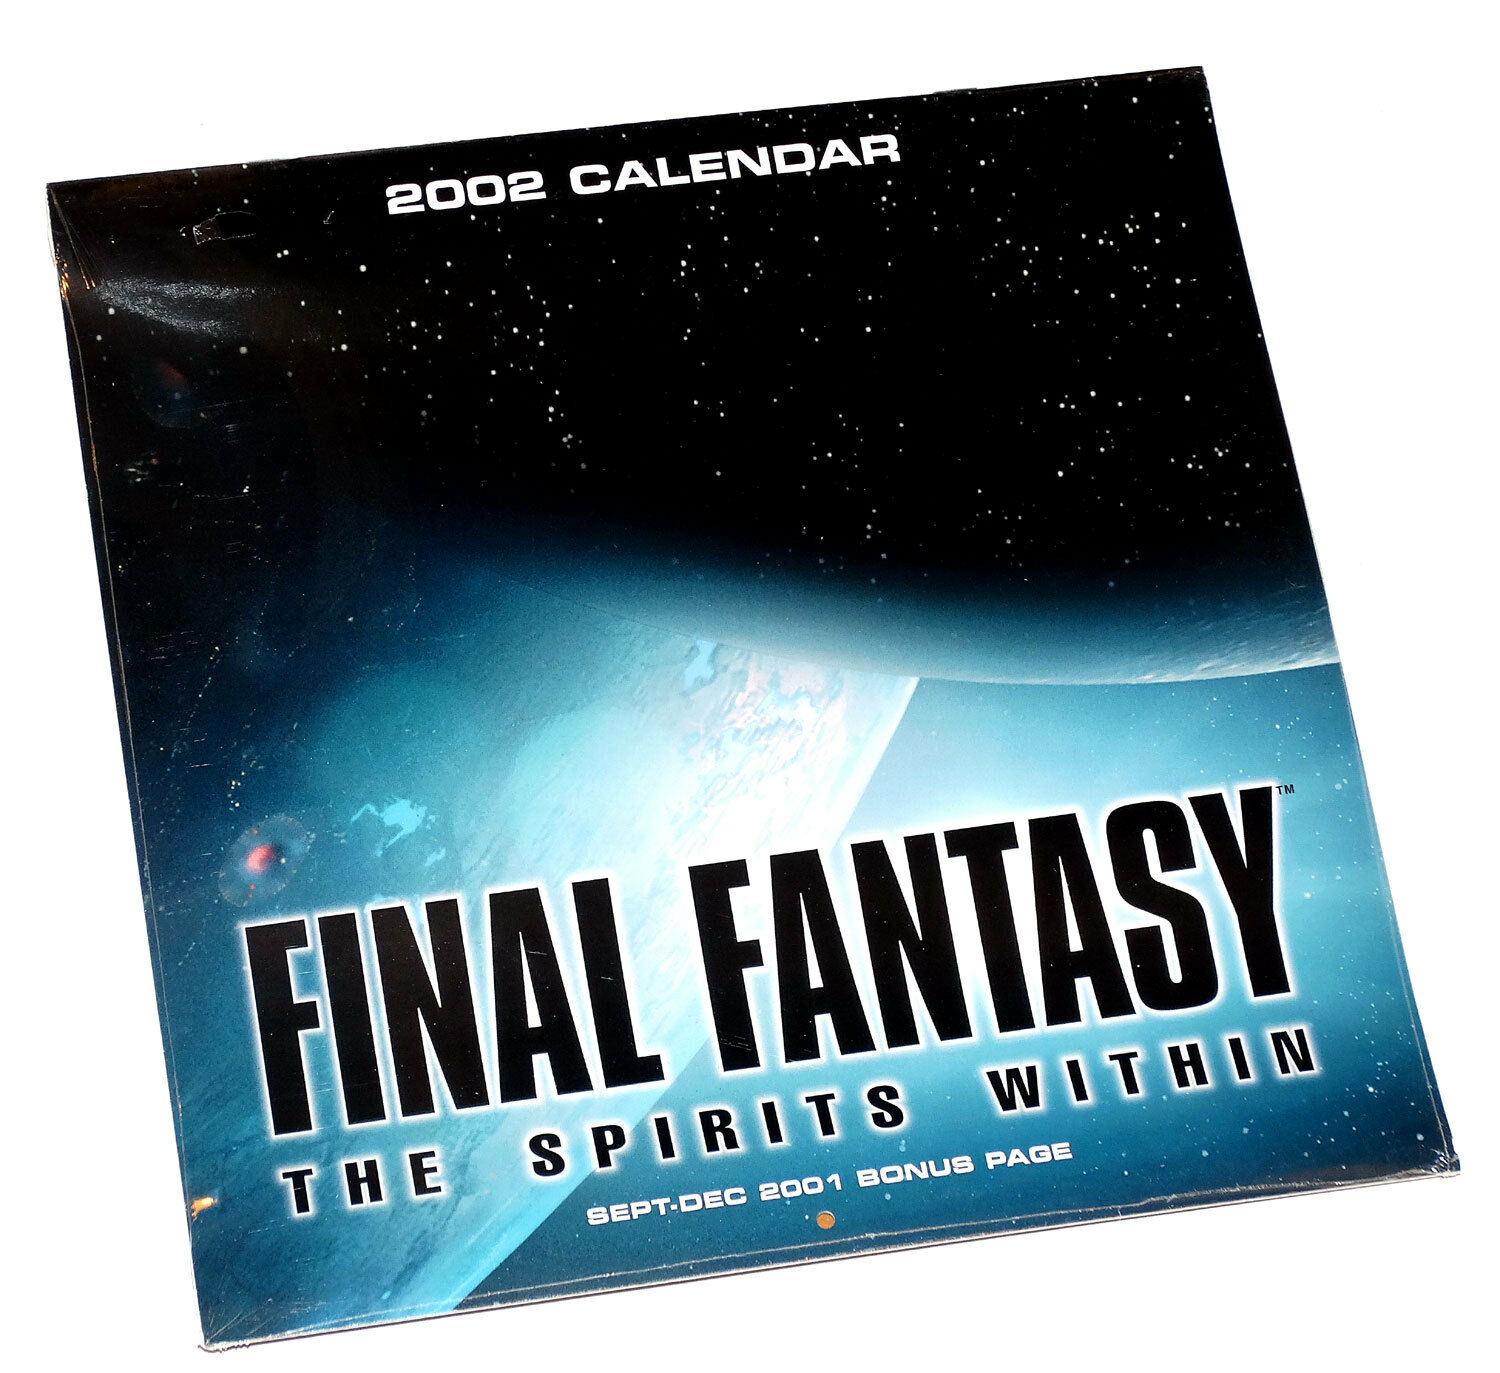 Final fantasy, die geister in 2002 kalender fabrik versiegelt entertainment cal